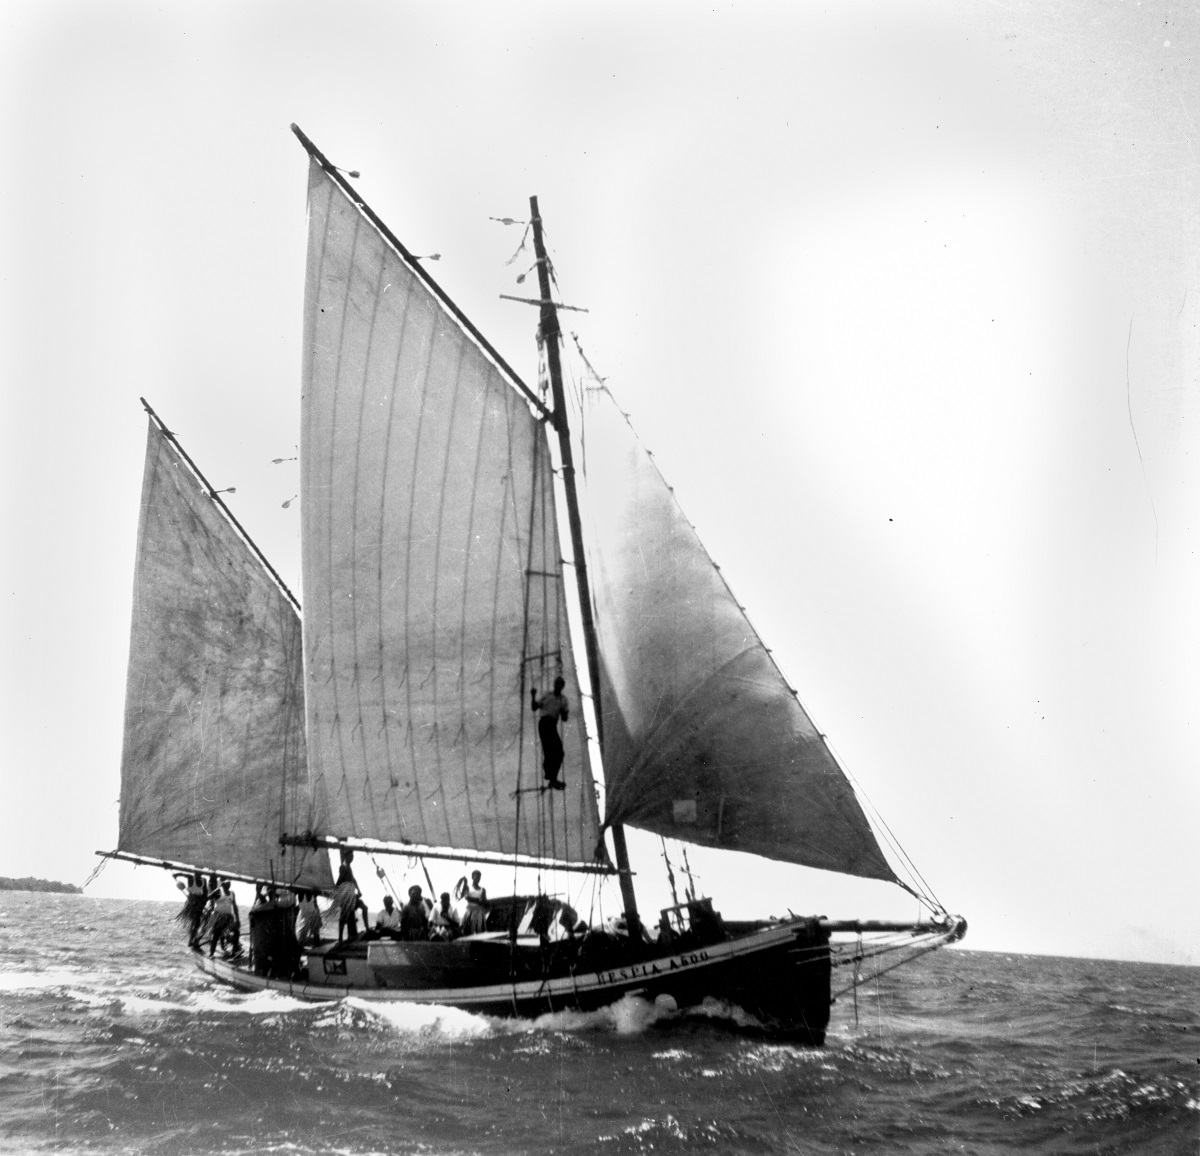 Pearling lugger in the Torres Strait